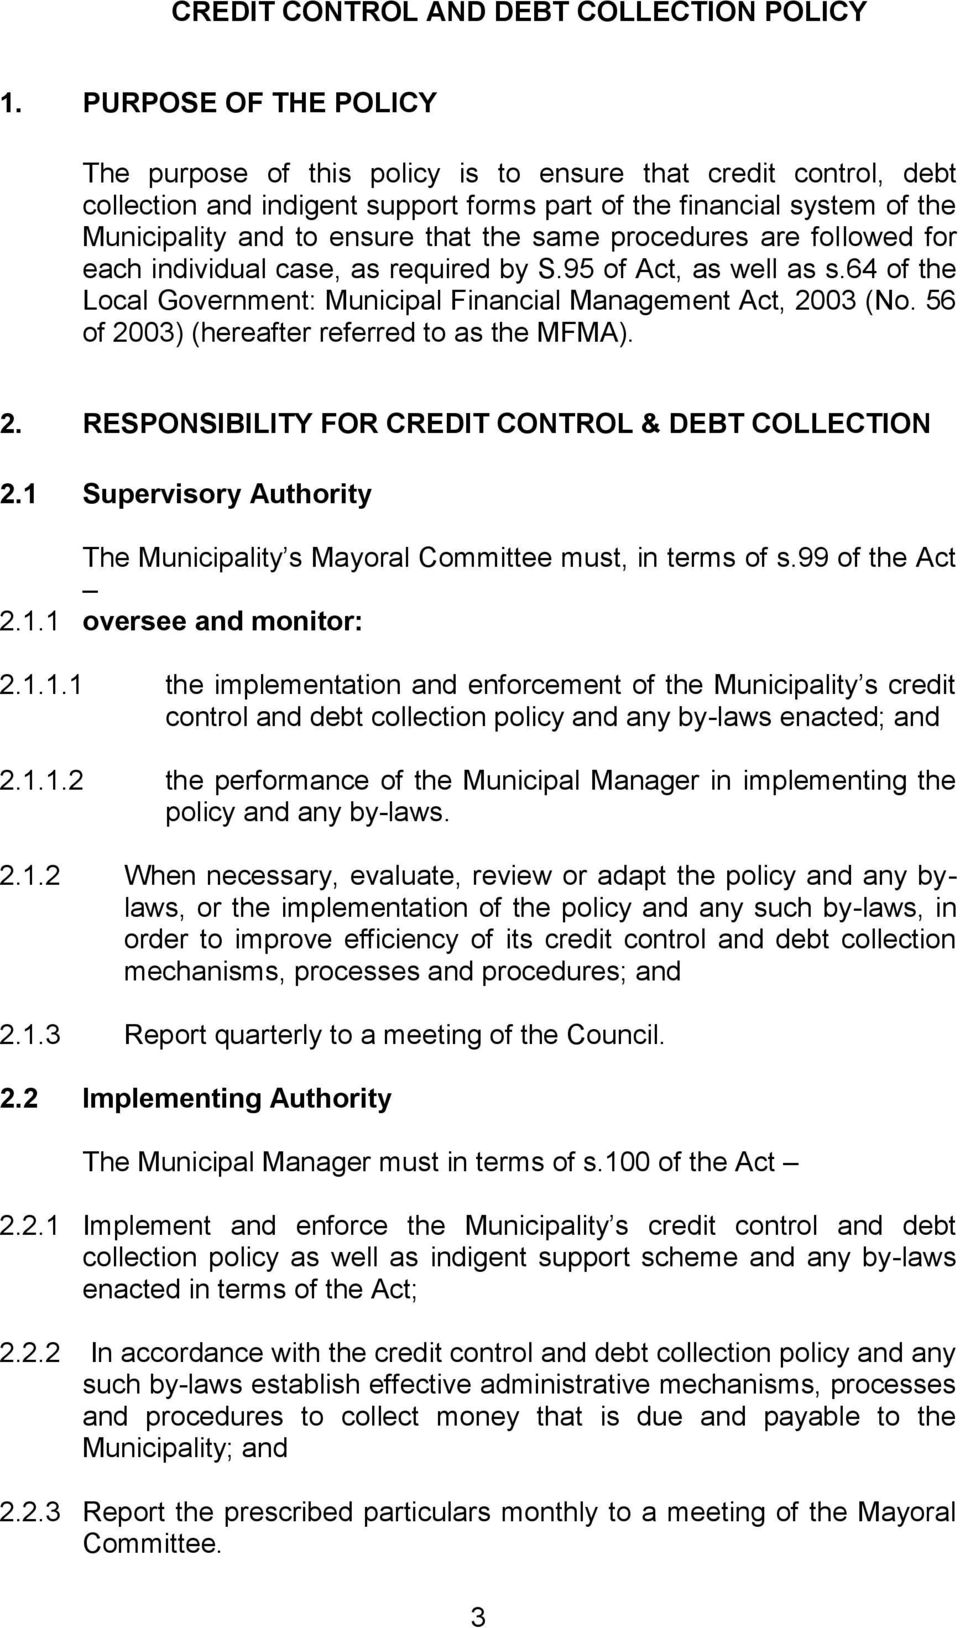 same procedures are followed for each individual case, as required by S.95 of Act, as well as s.64 of the Local Government: Municipal Financial Management Act, 2003 (No.